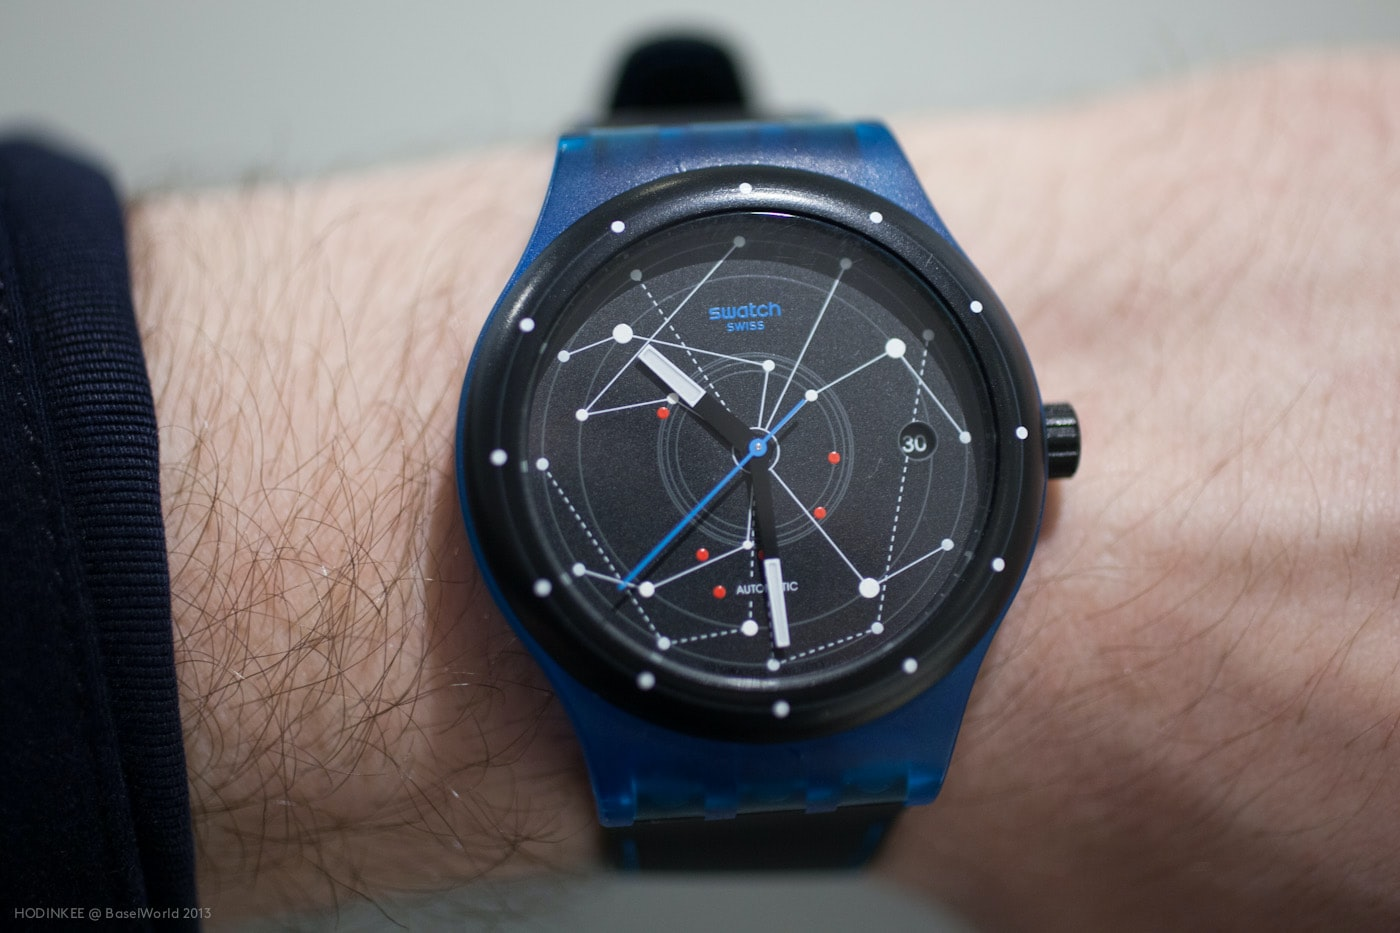 Exclusive Hands-On Look At The Swatch Sistem51, A ...